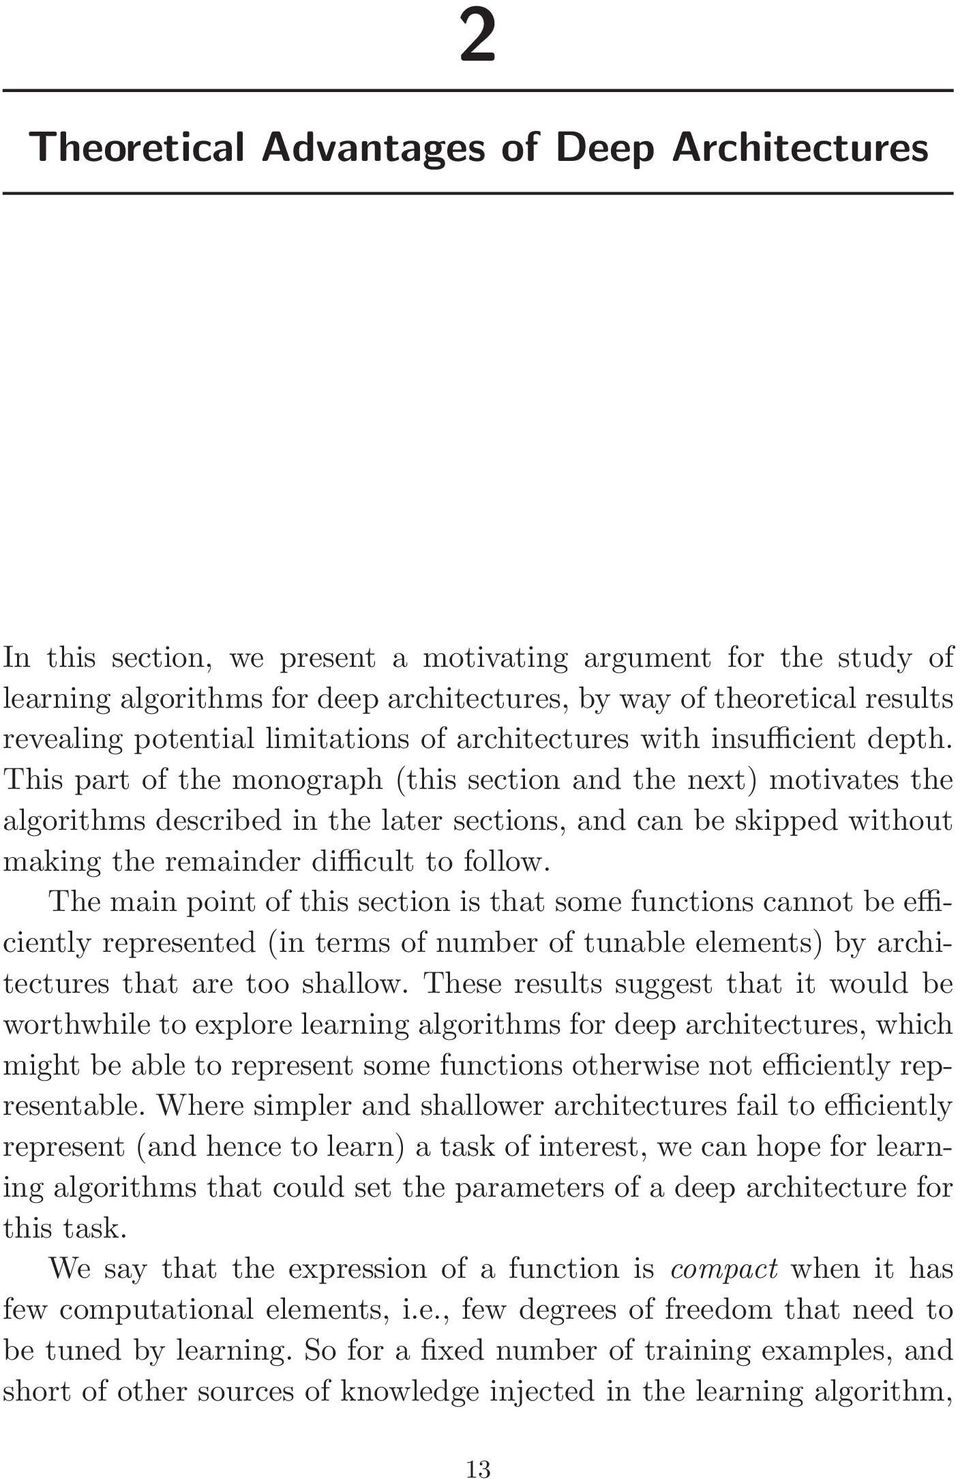 This part of the monograph (this section and the next) motivates the algorithms described in the later sections, and can be skipped without making the remainder difficult to follow.